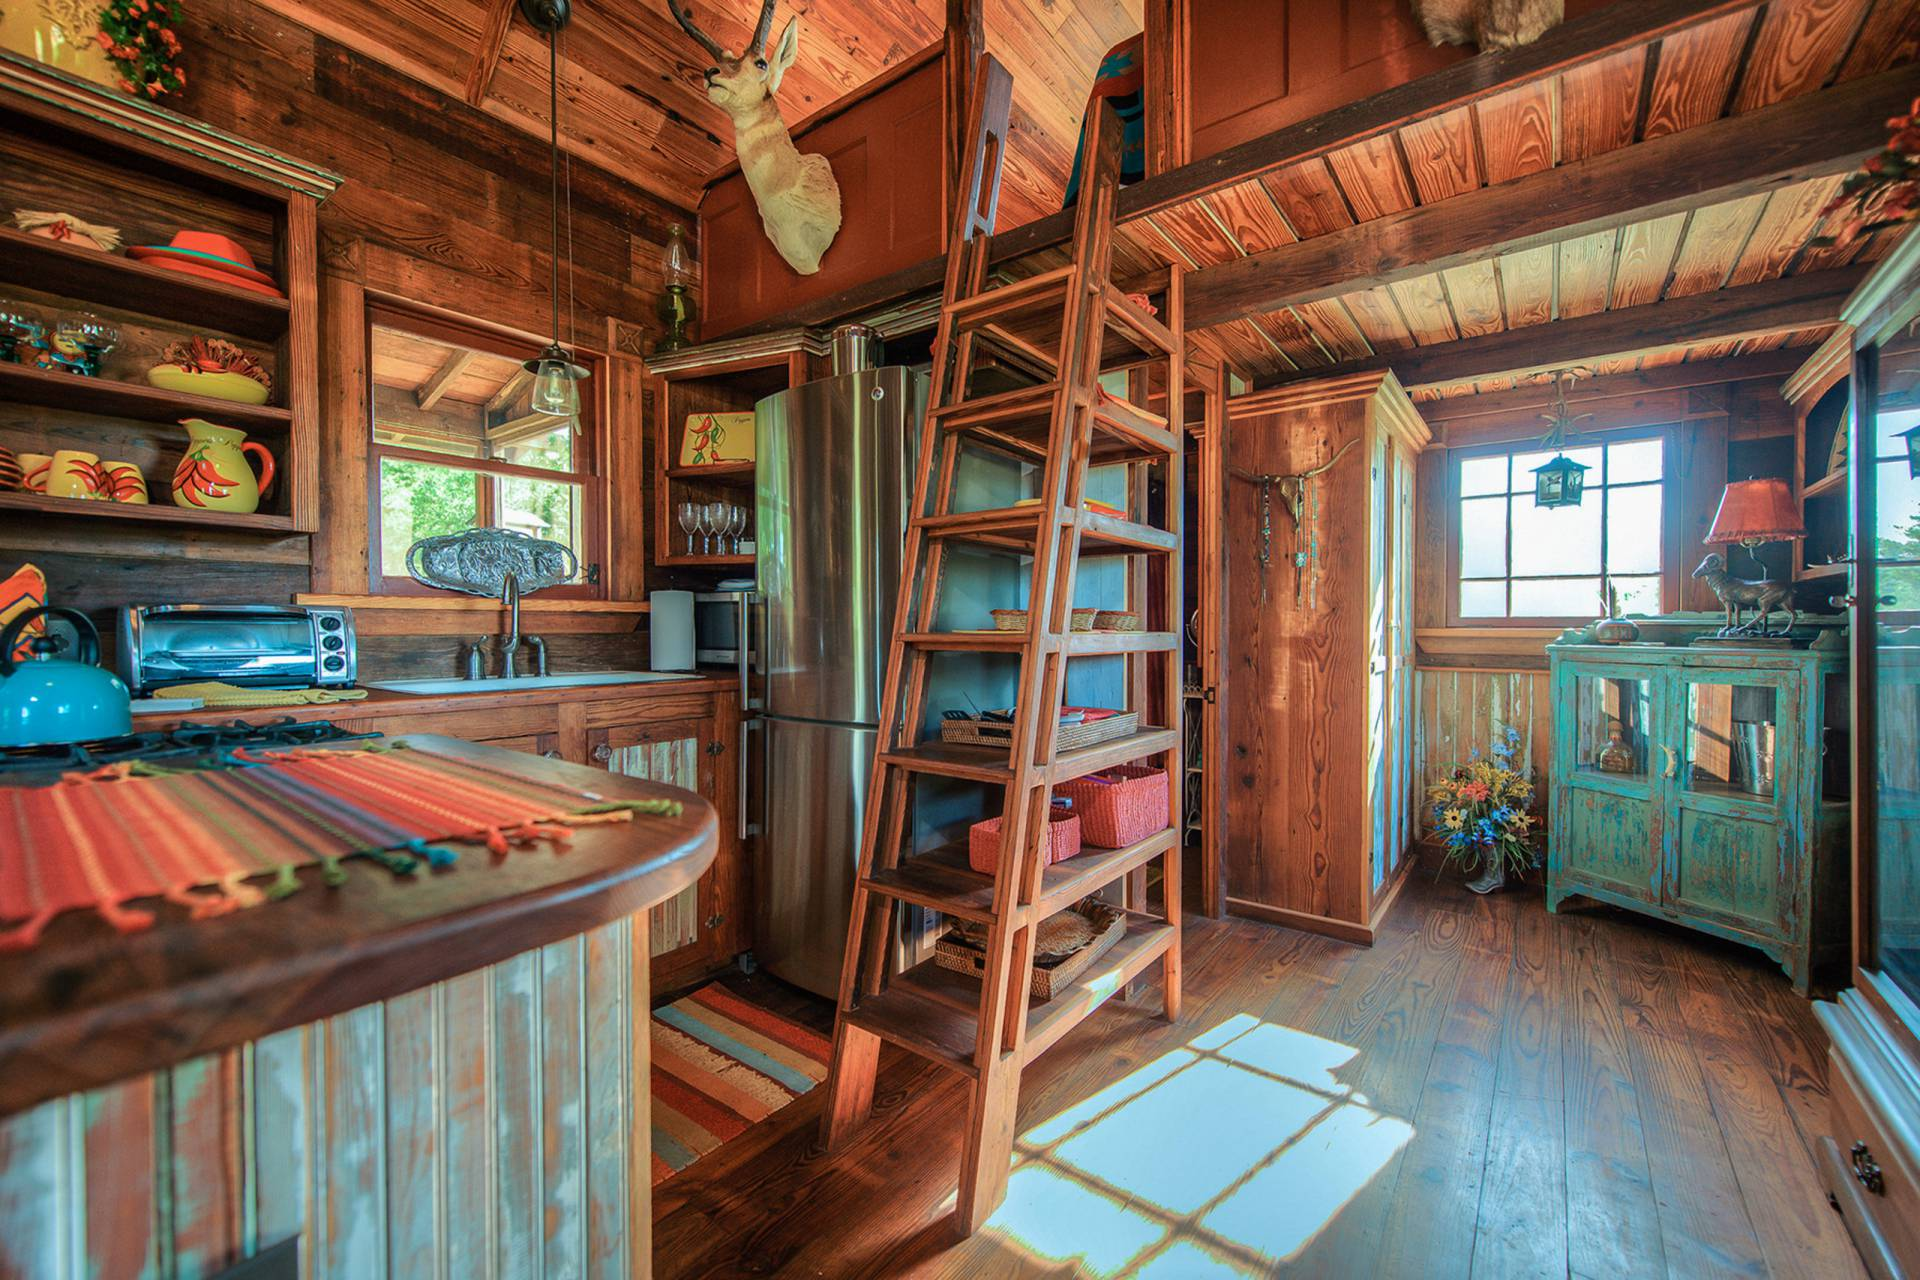 Beau The Rustic Cowboy Cabin Was Built From Salvaged Materials. The 12u0027x28u0027 Cabin